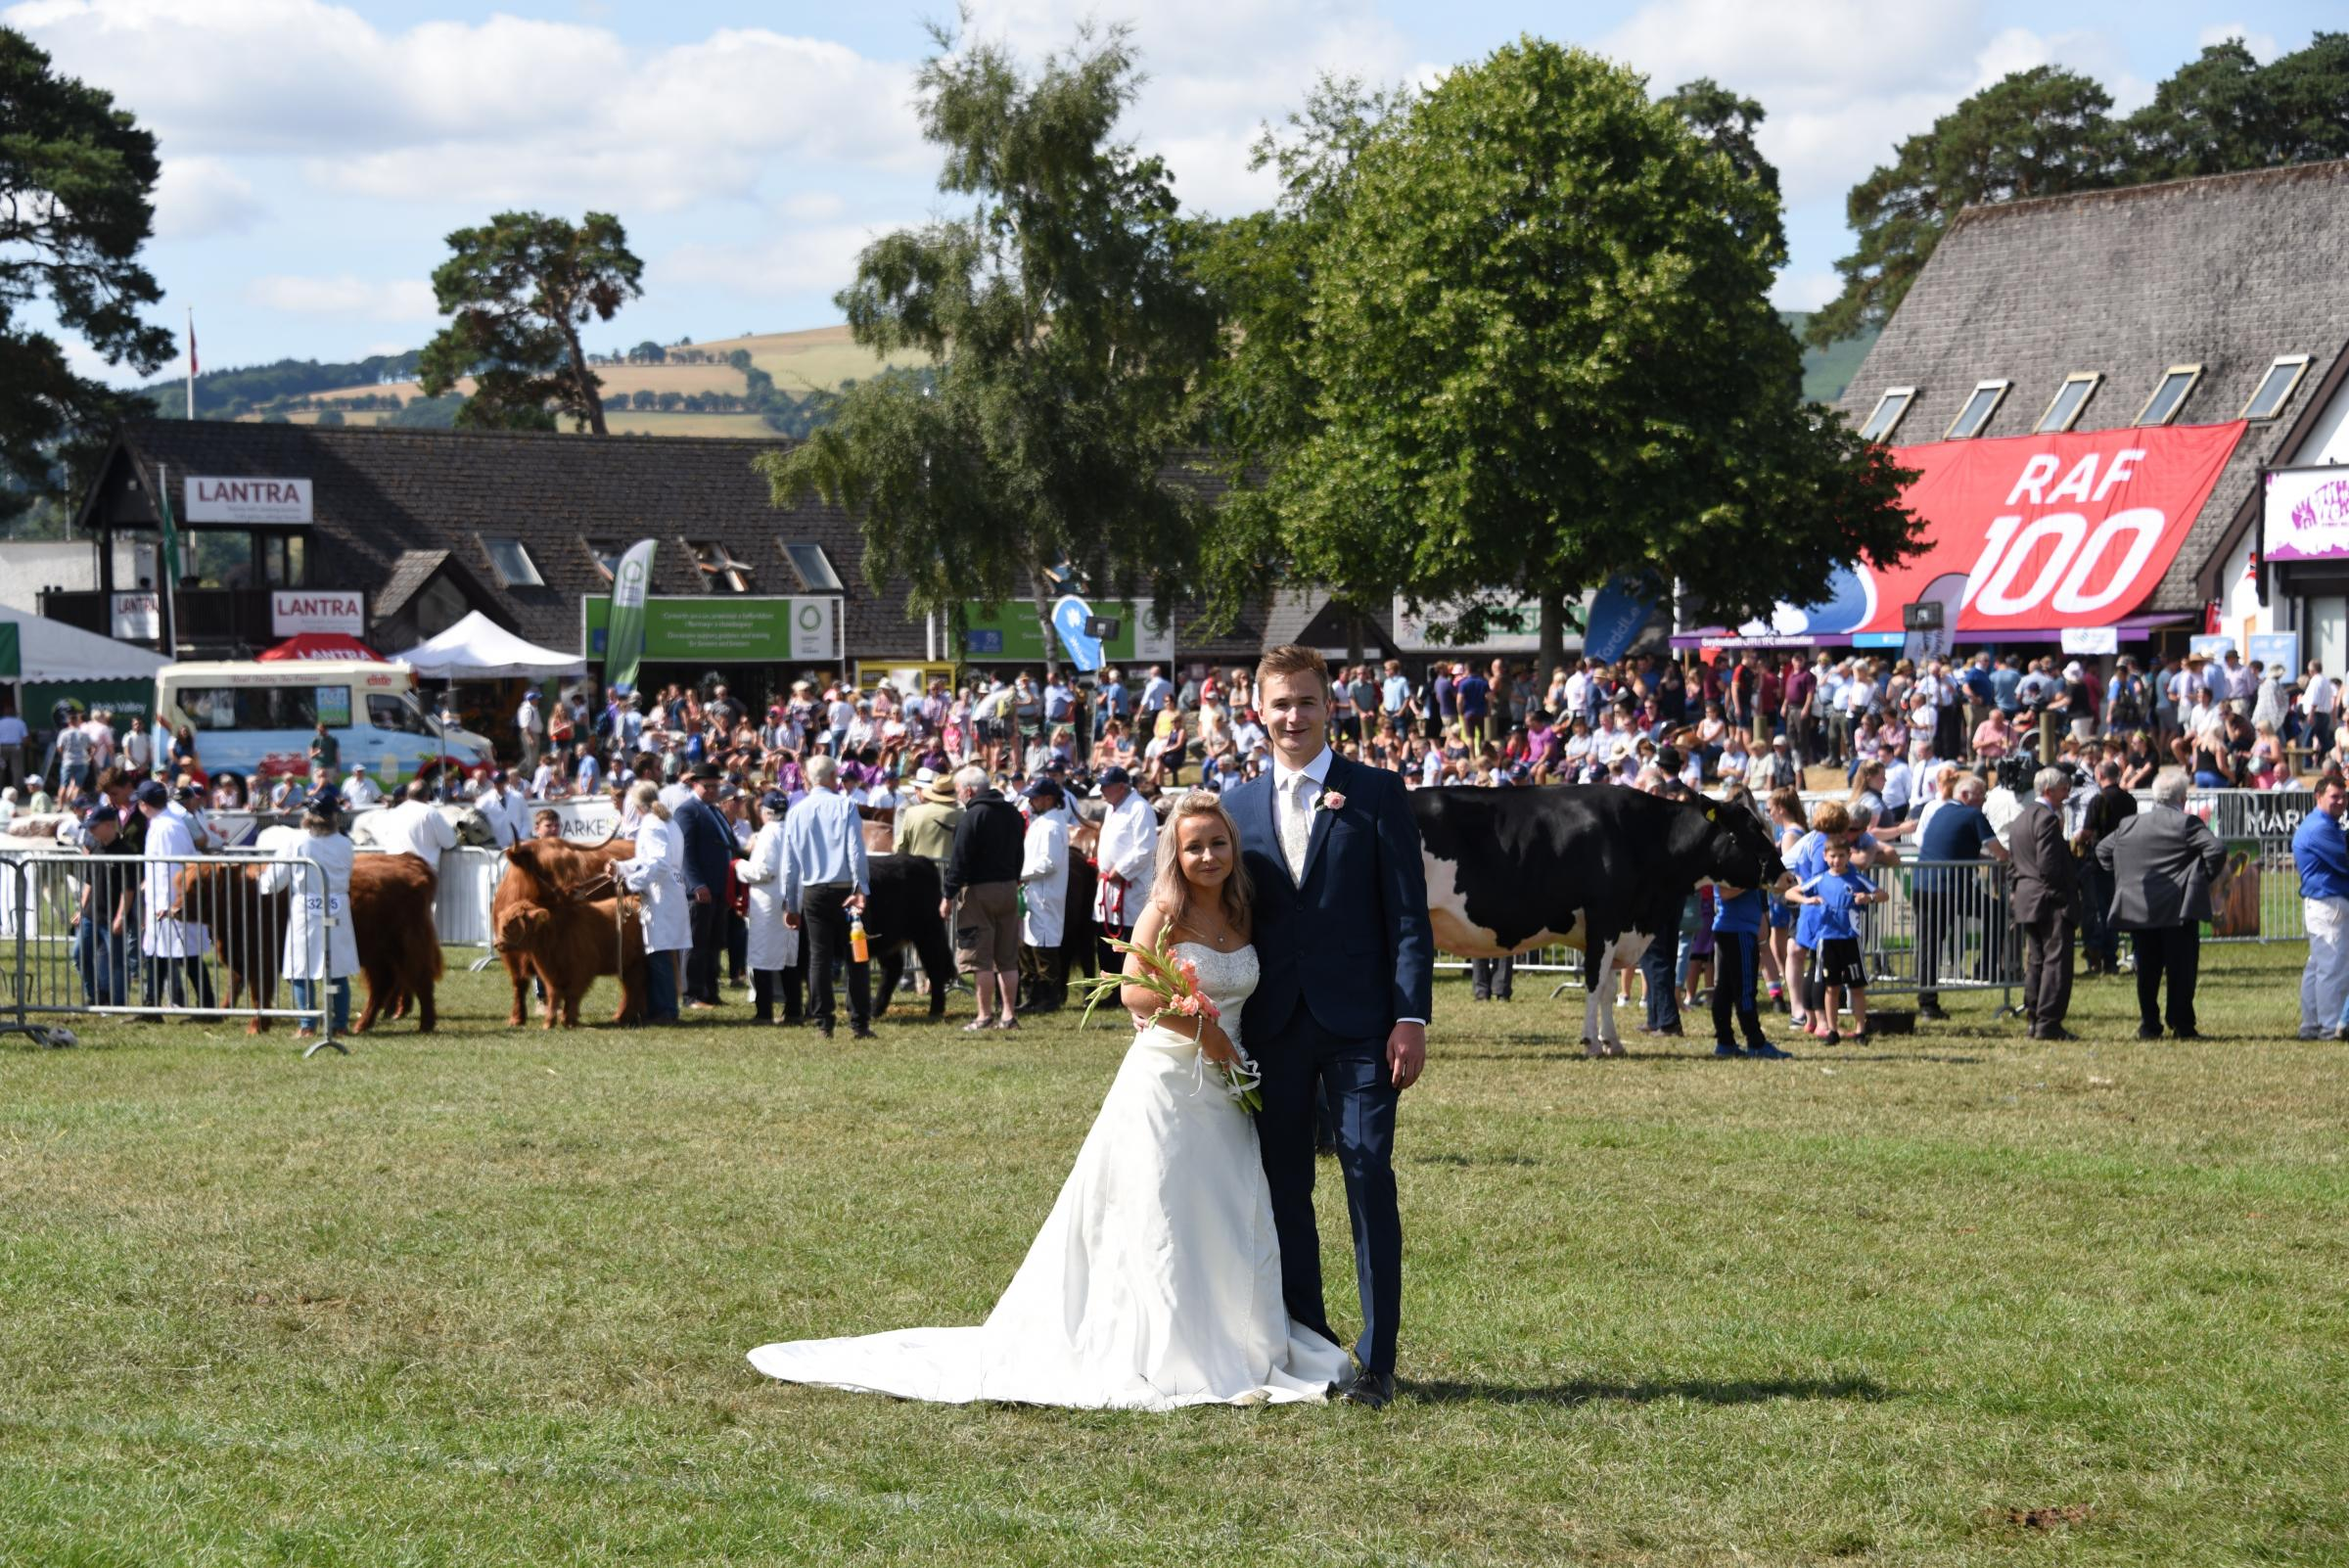 Fancy getting married at this year's Royal Welsh Show?